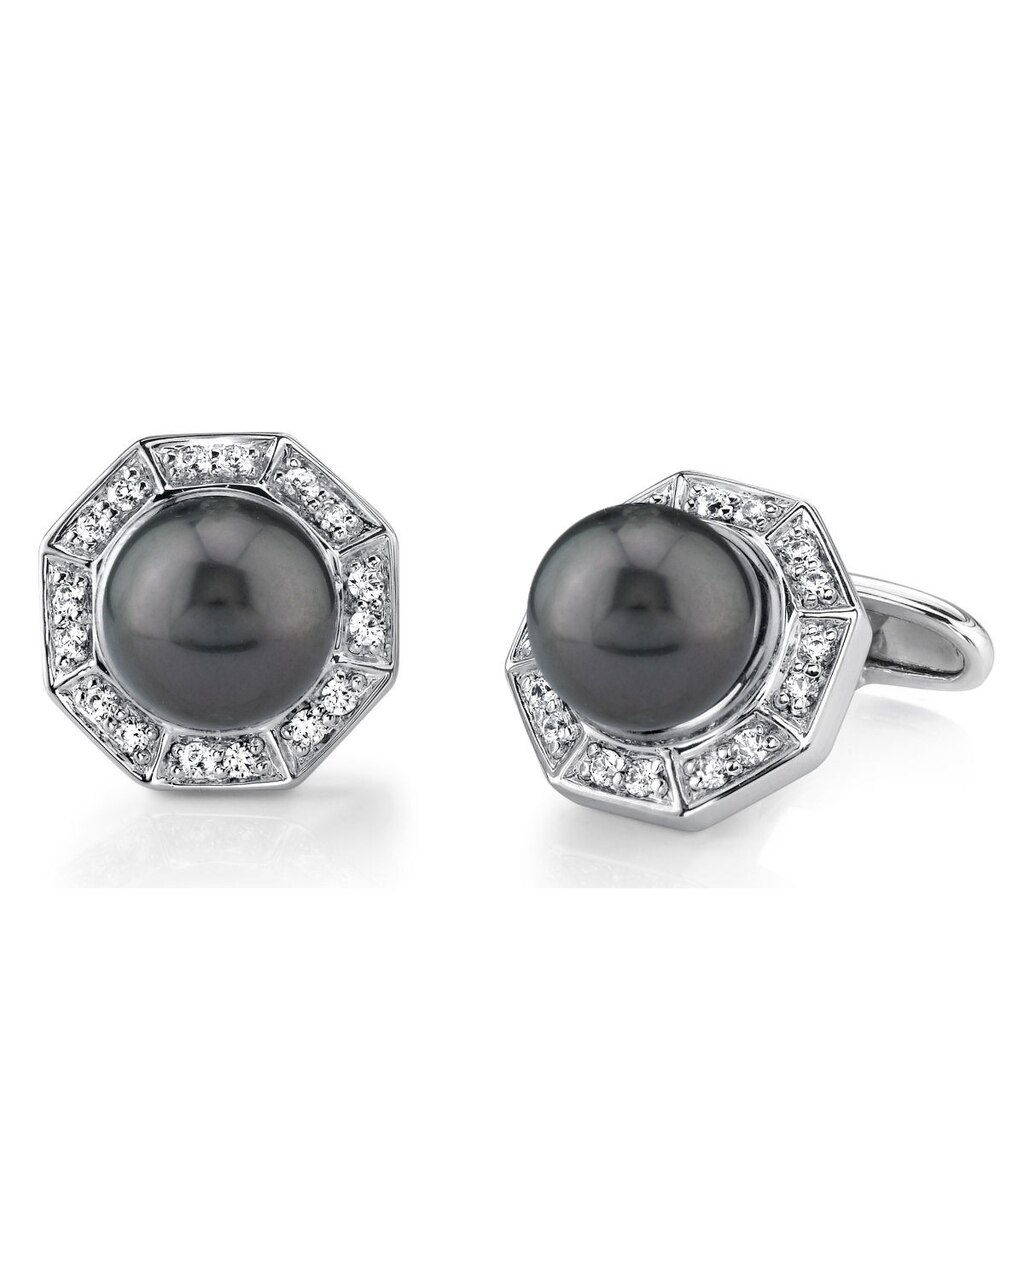 These stunning cufflinks feature beautiful Tahitian South Sea pearl and cubic zirconia crystals